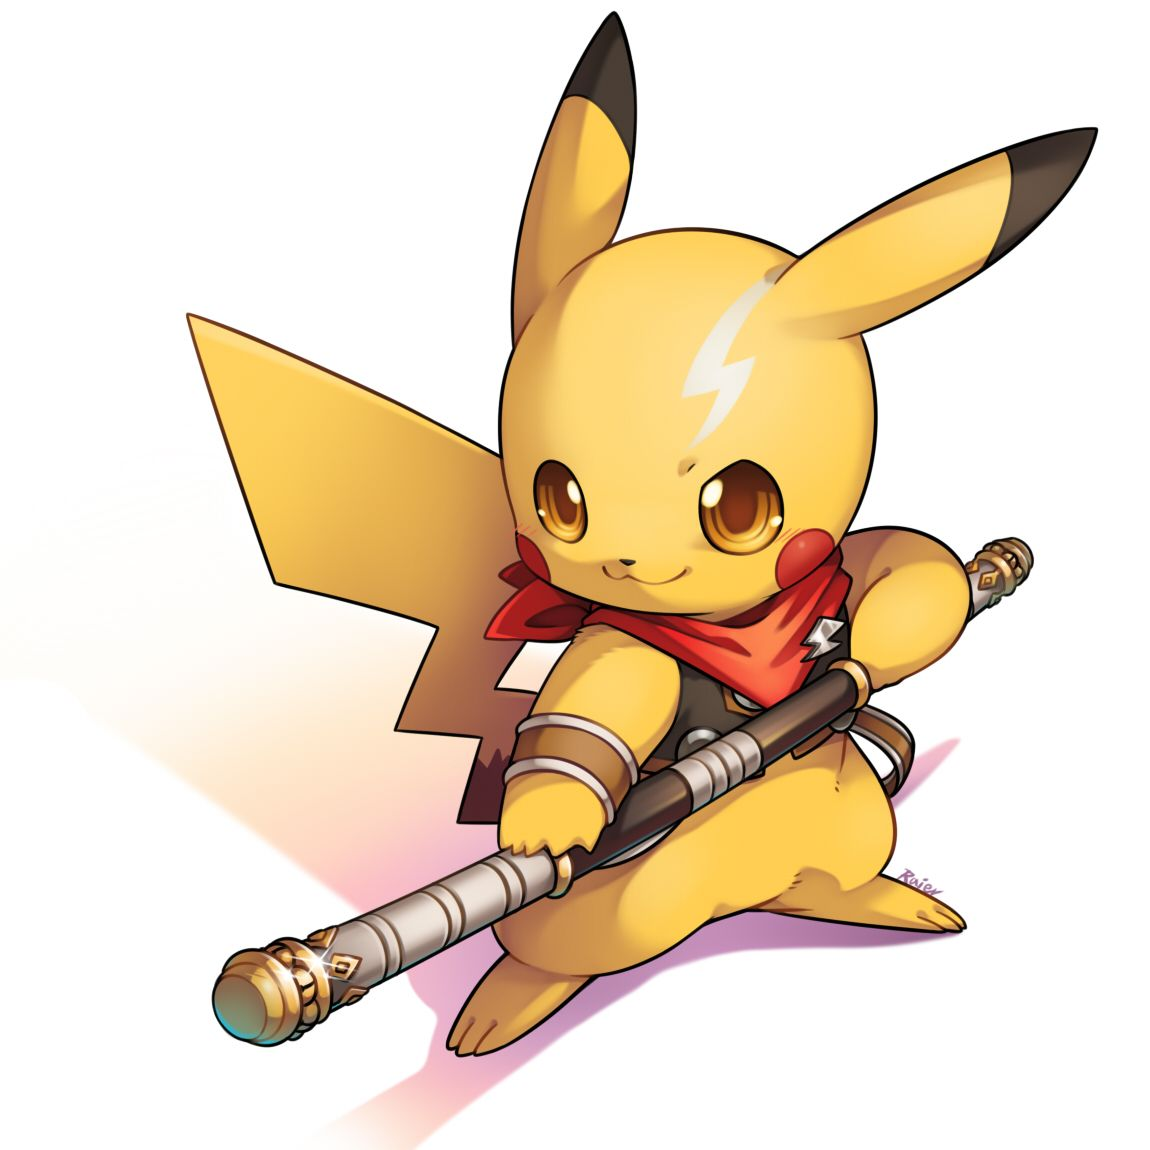 Sexy animated pikachu